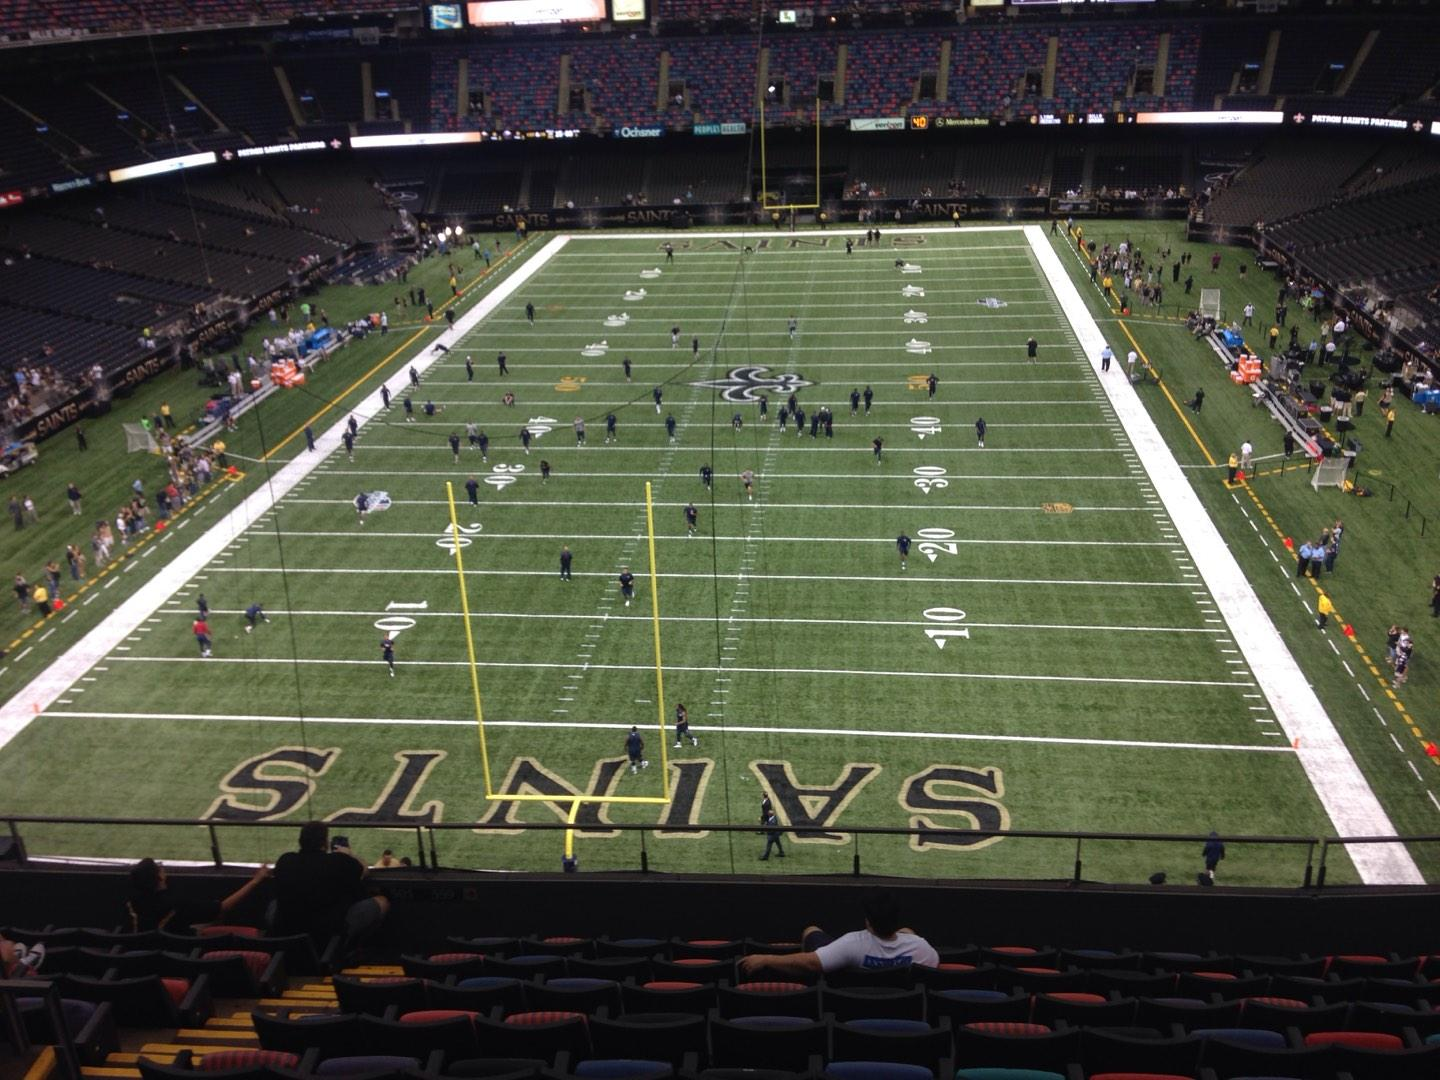 Mercedes-Benz Superdome Section 652 Row 6 Seat 10